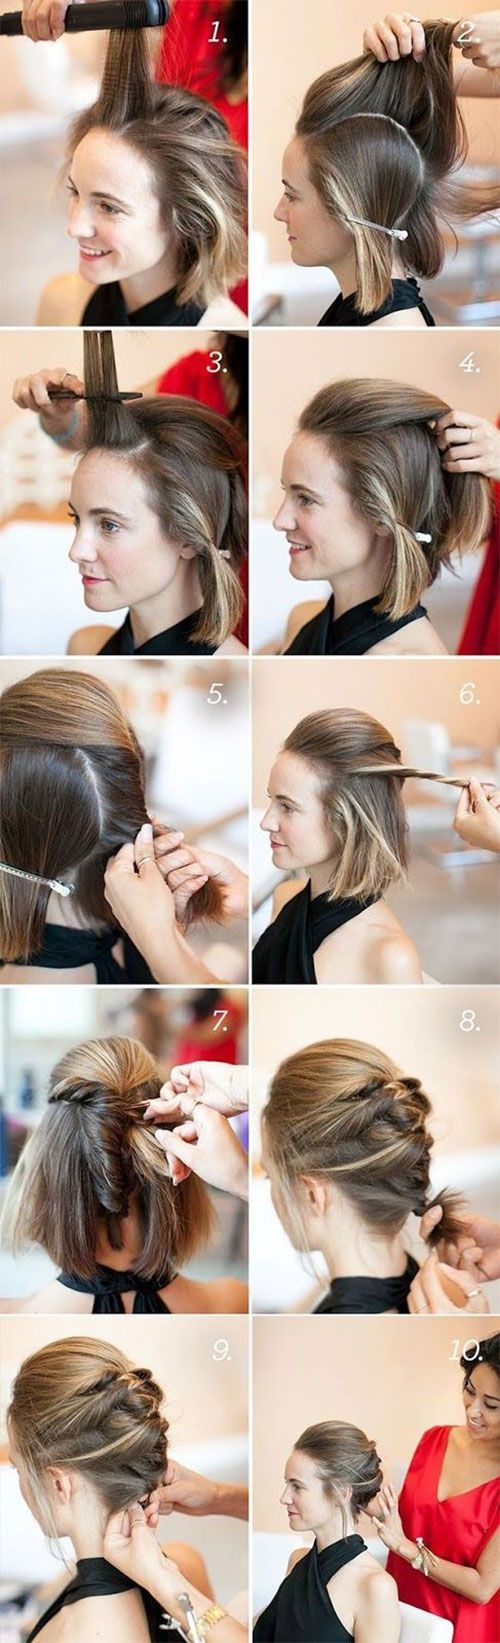 Short hair updos how to style bobs lobs tutorials kapsels